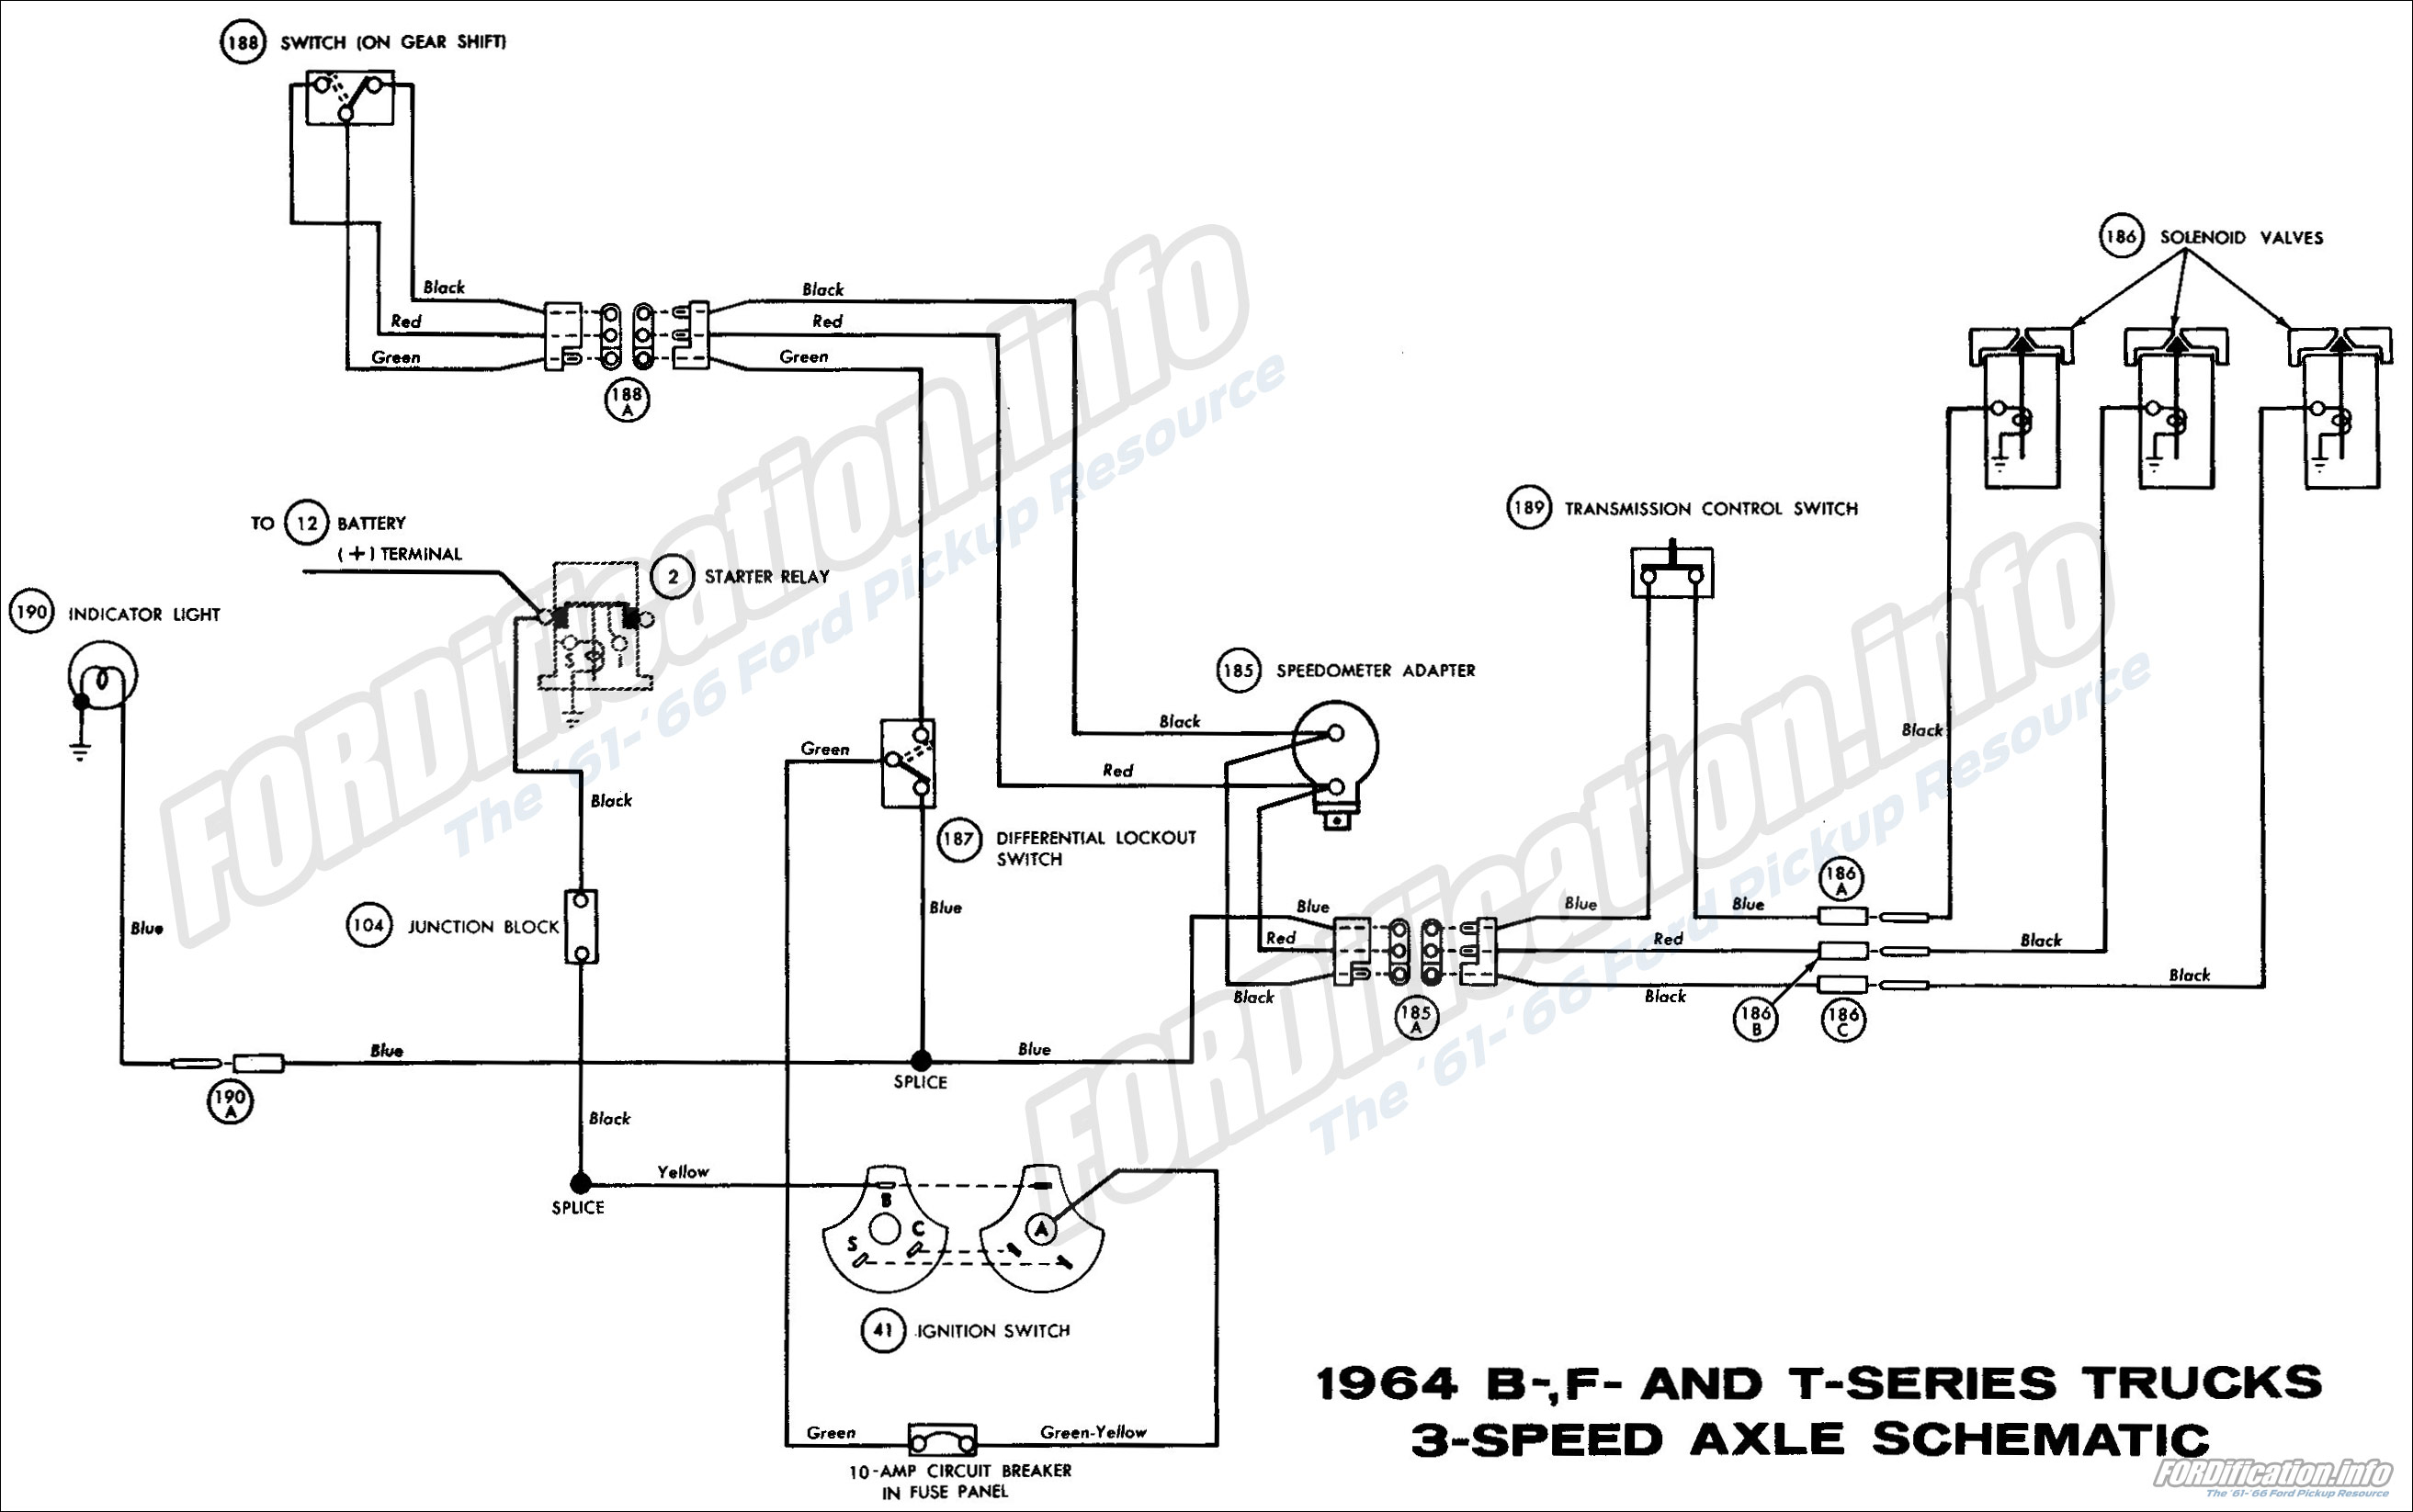 Wiring Diagram Eaton Transmission : 33 Wiring Diagram